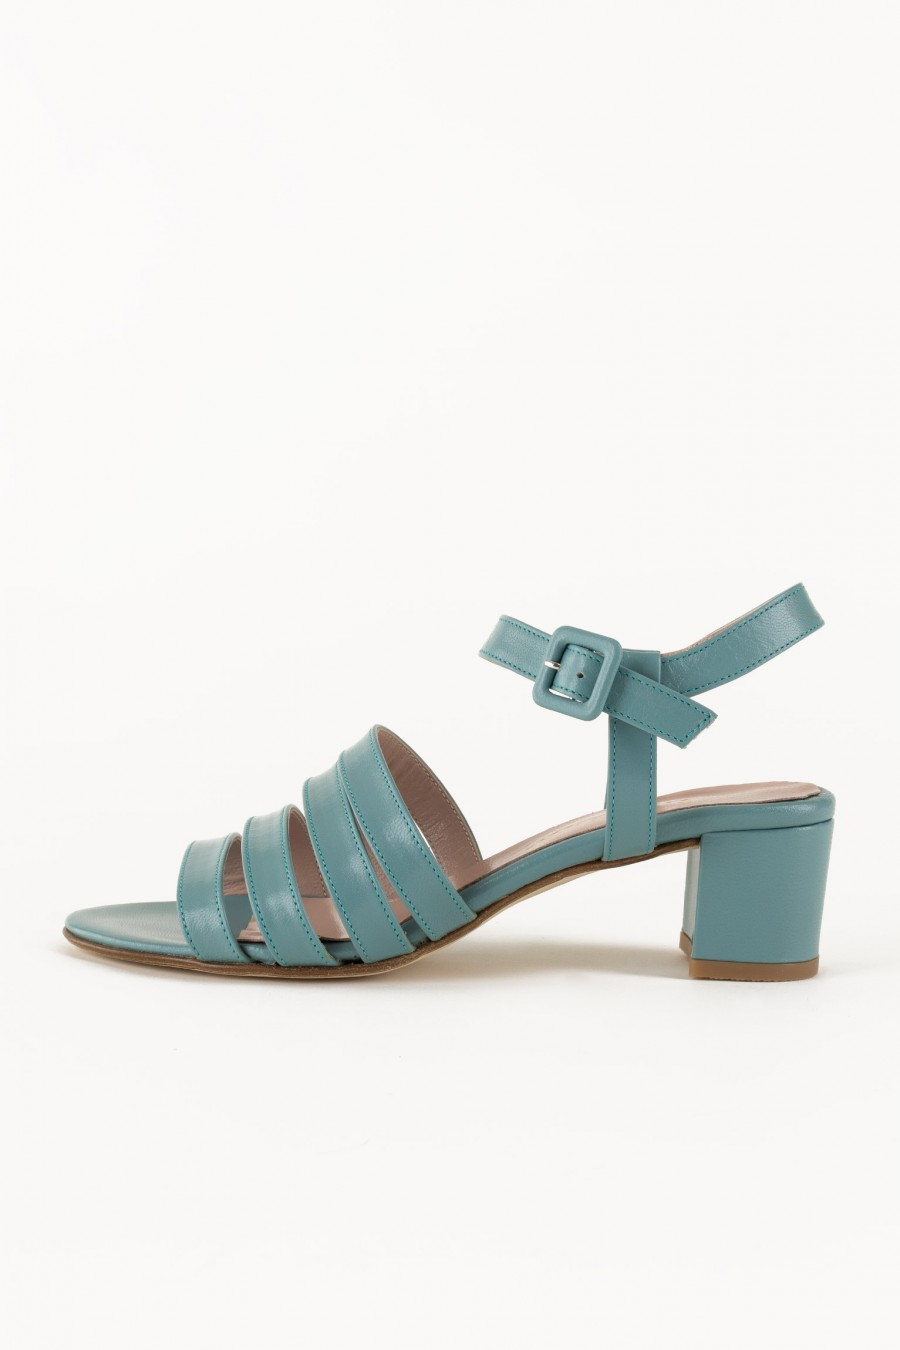 Elegant light blue sandals